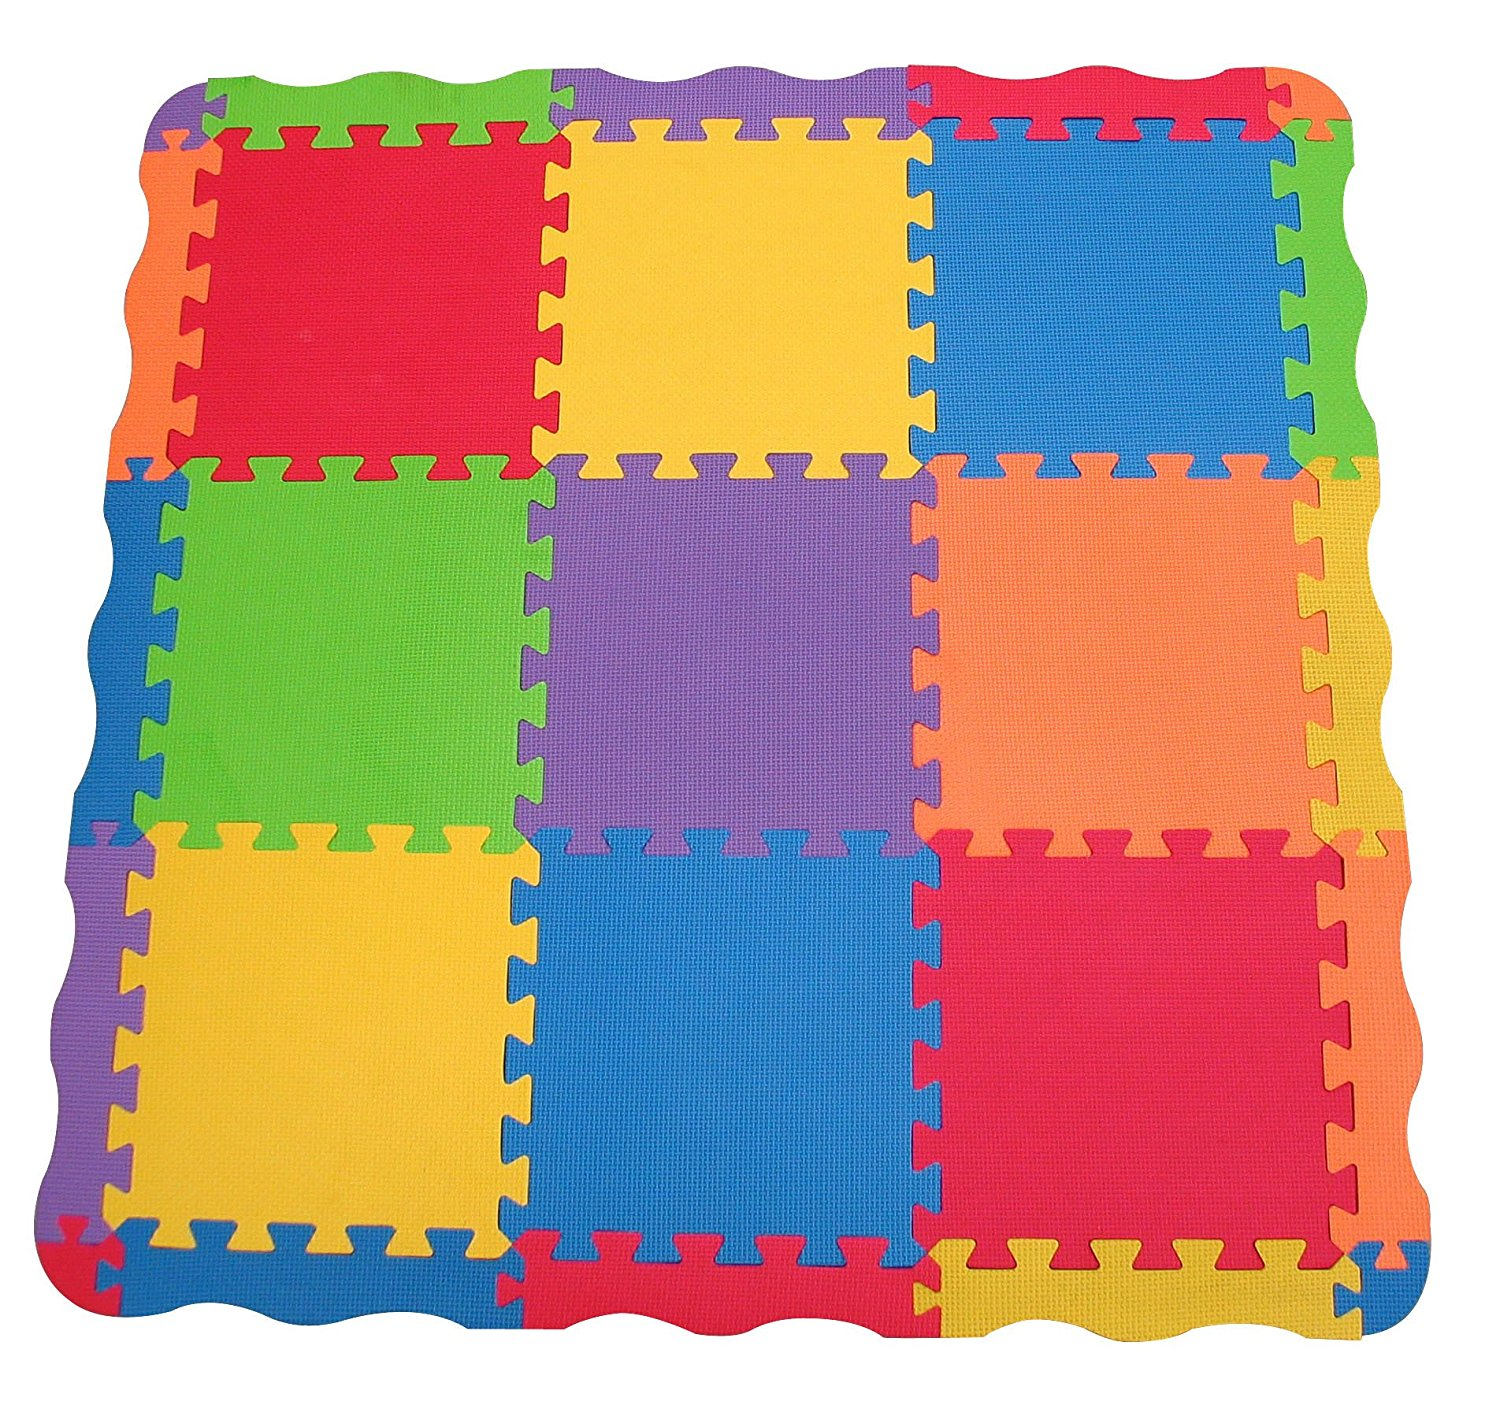 for and toddlers play gear portable c x s baby design parklon mat road gyms mats